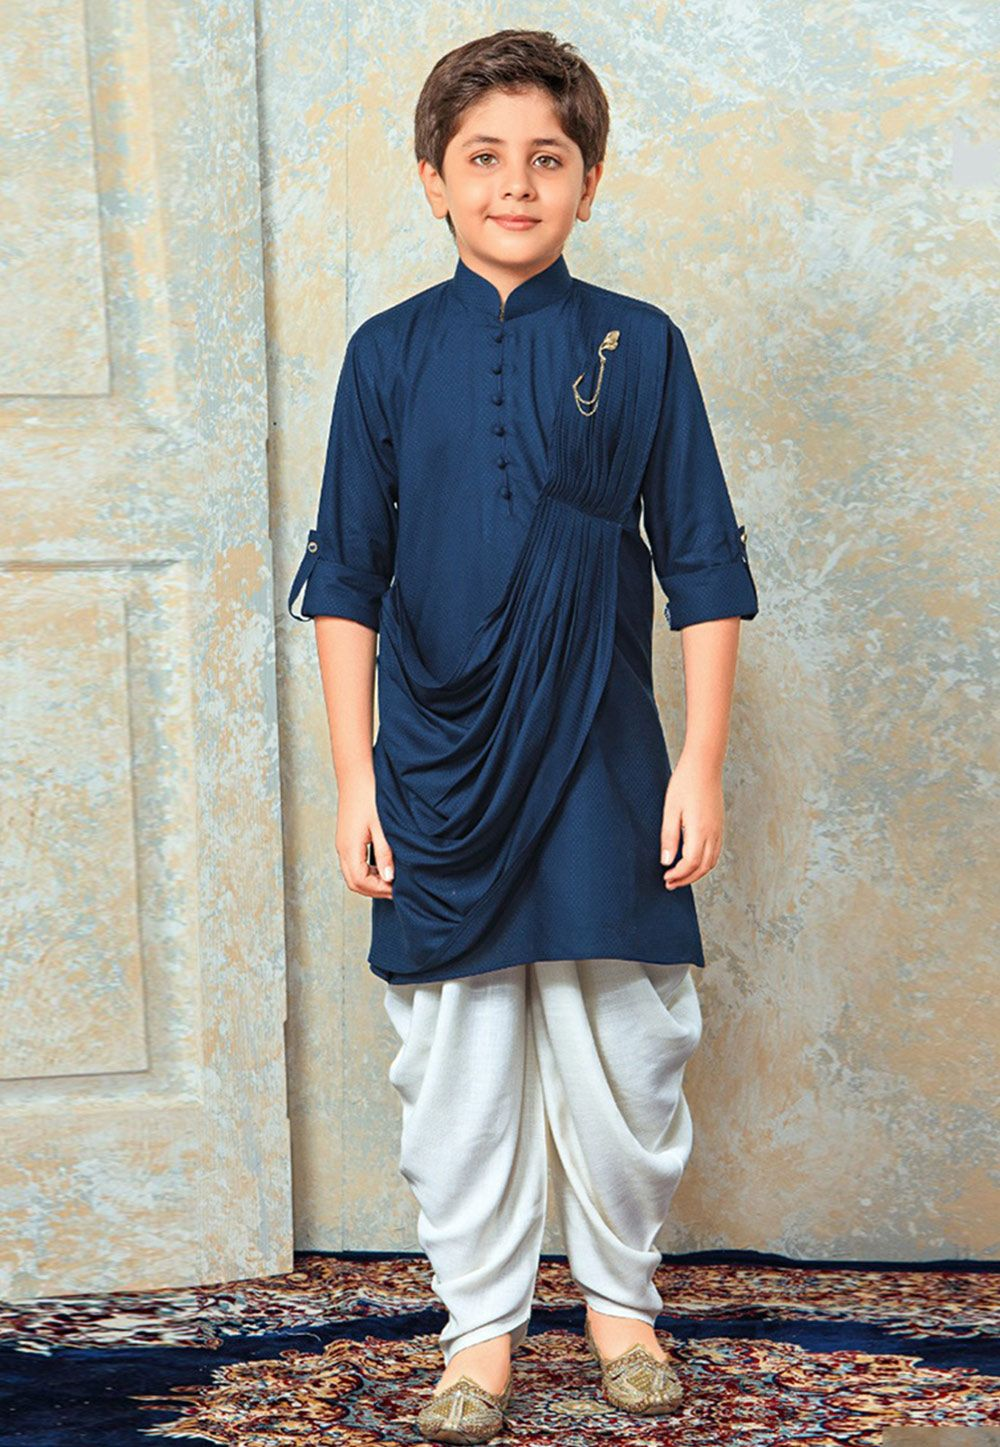 7a58175a0c024d28b30d21e123dc1857 Punjabi Dress for Kids- 30 Best Punjabi Outfits for Children